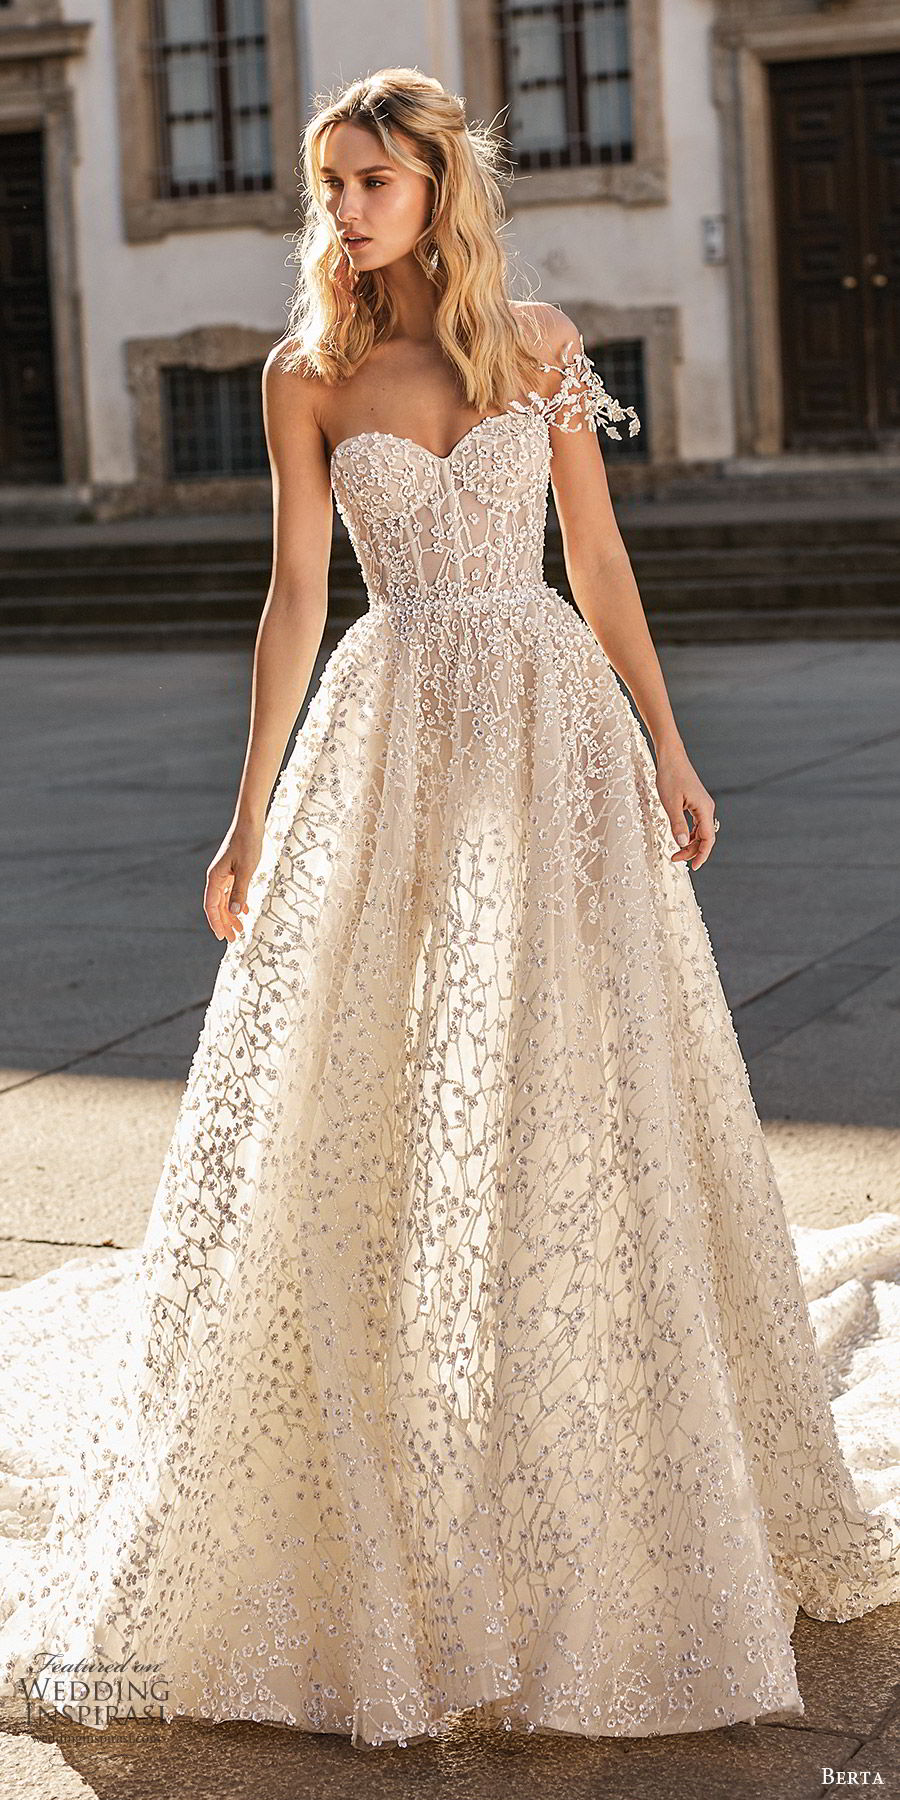 berta spring 2020 bridal one shoulder sweetheart fully embellished beaded a line ball gown wedding dress (15) romantic glitzy princess cathedral train mv